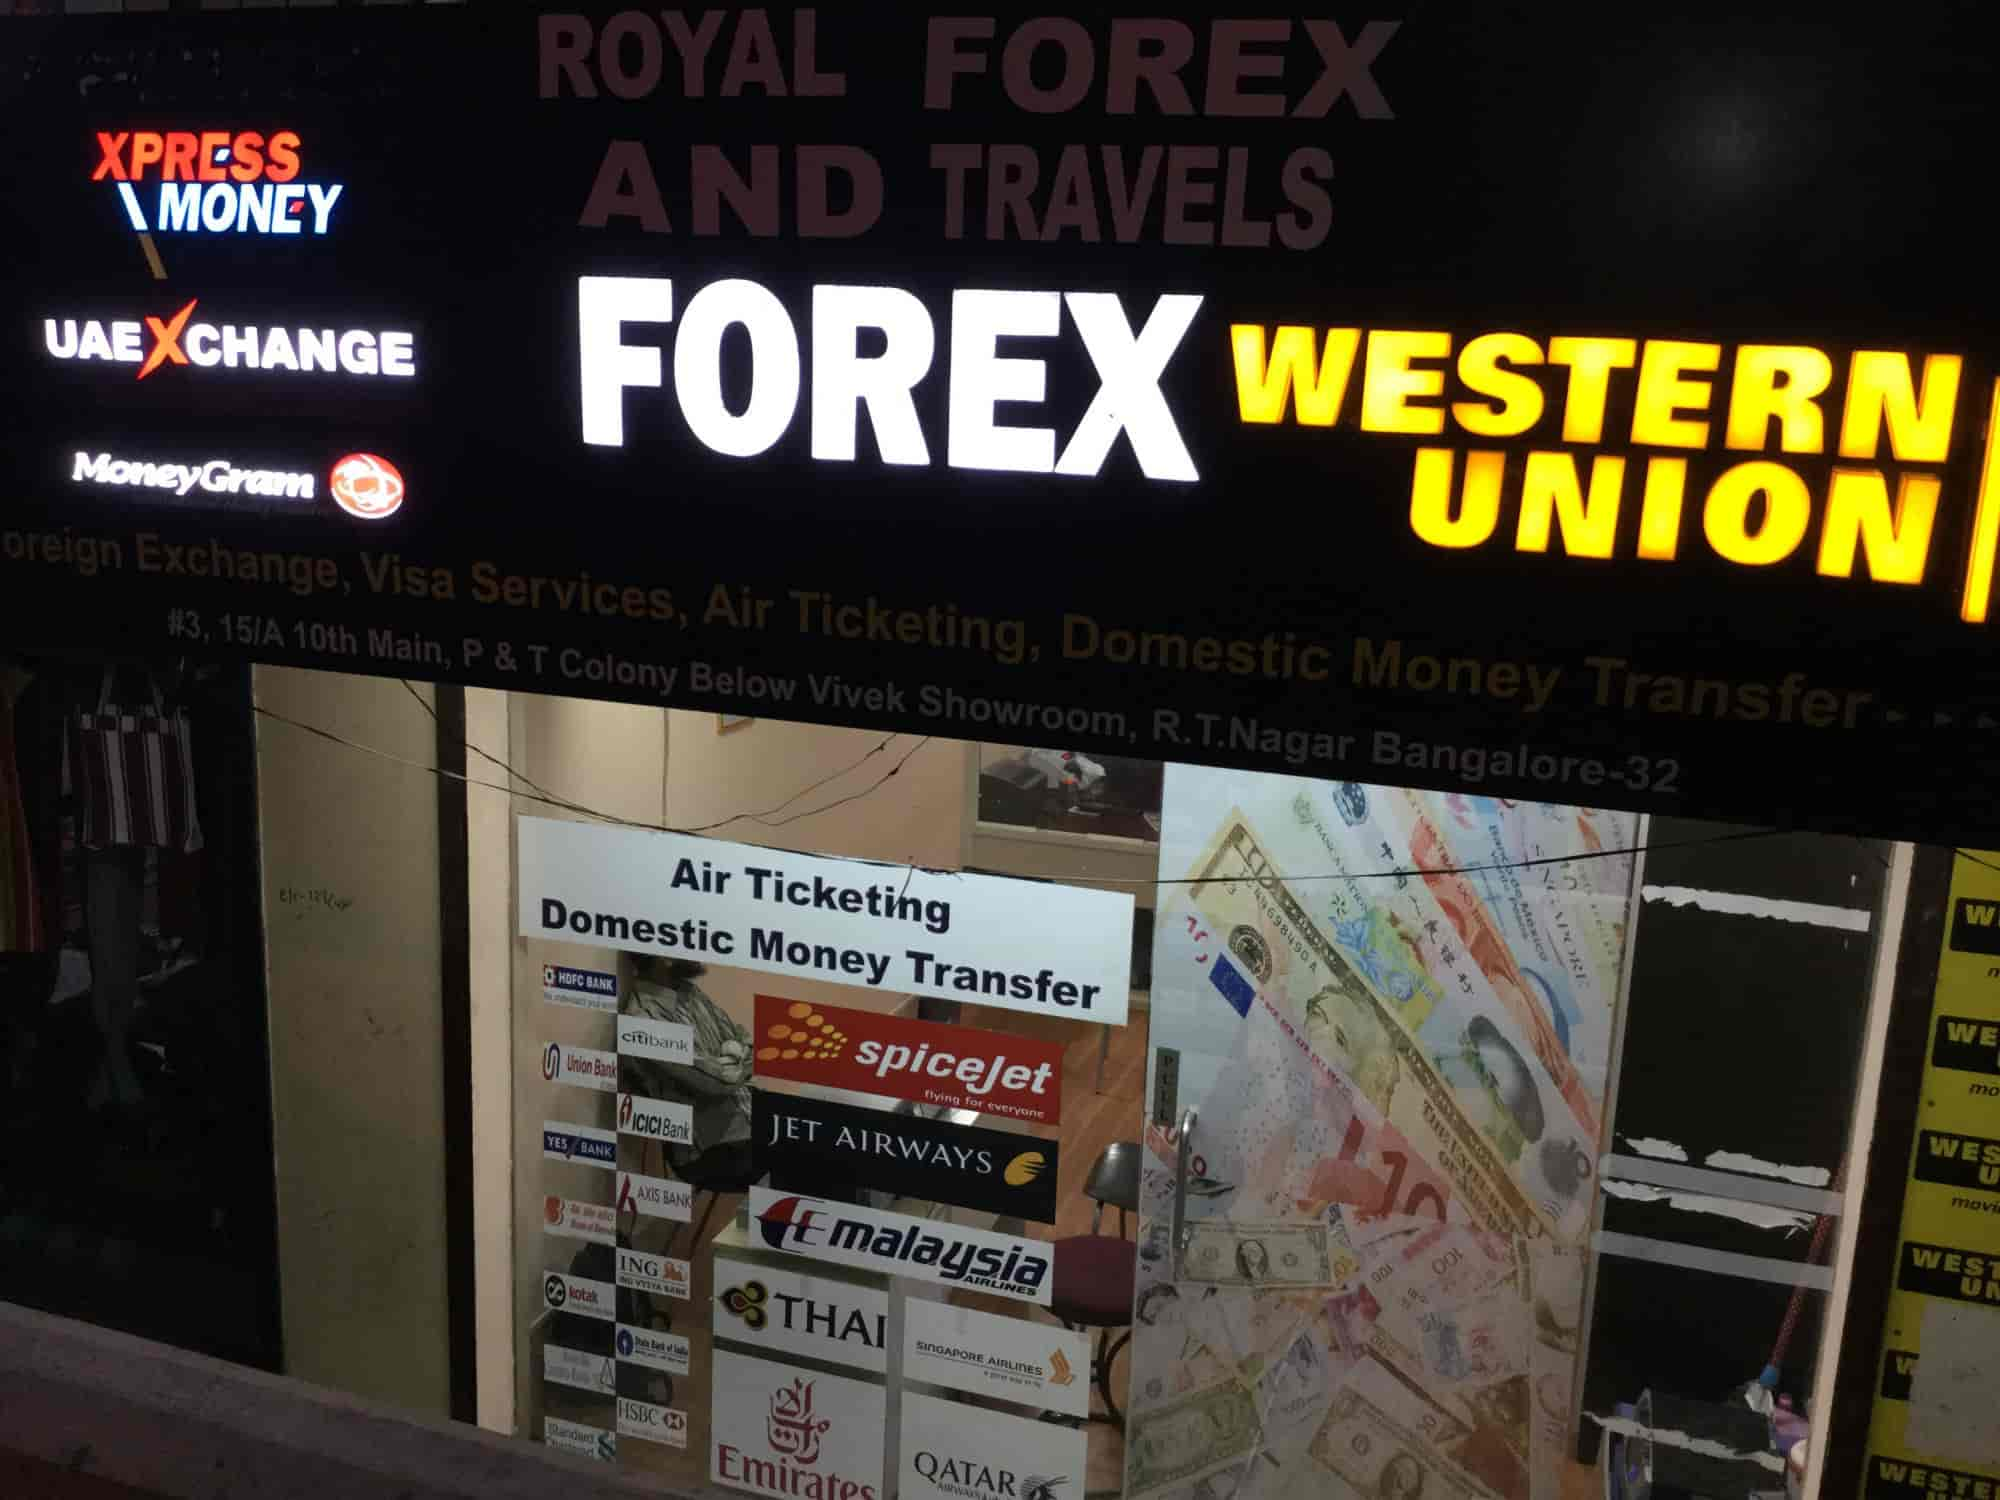 Exchange traded funds listed on the jse